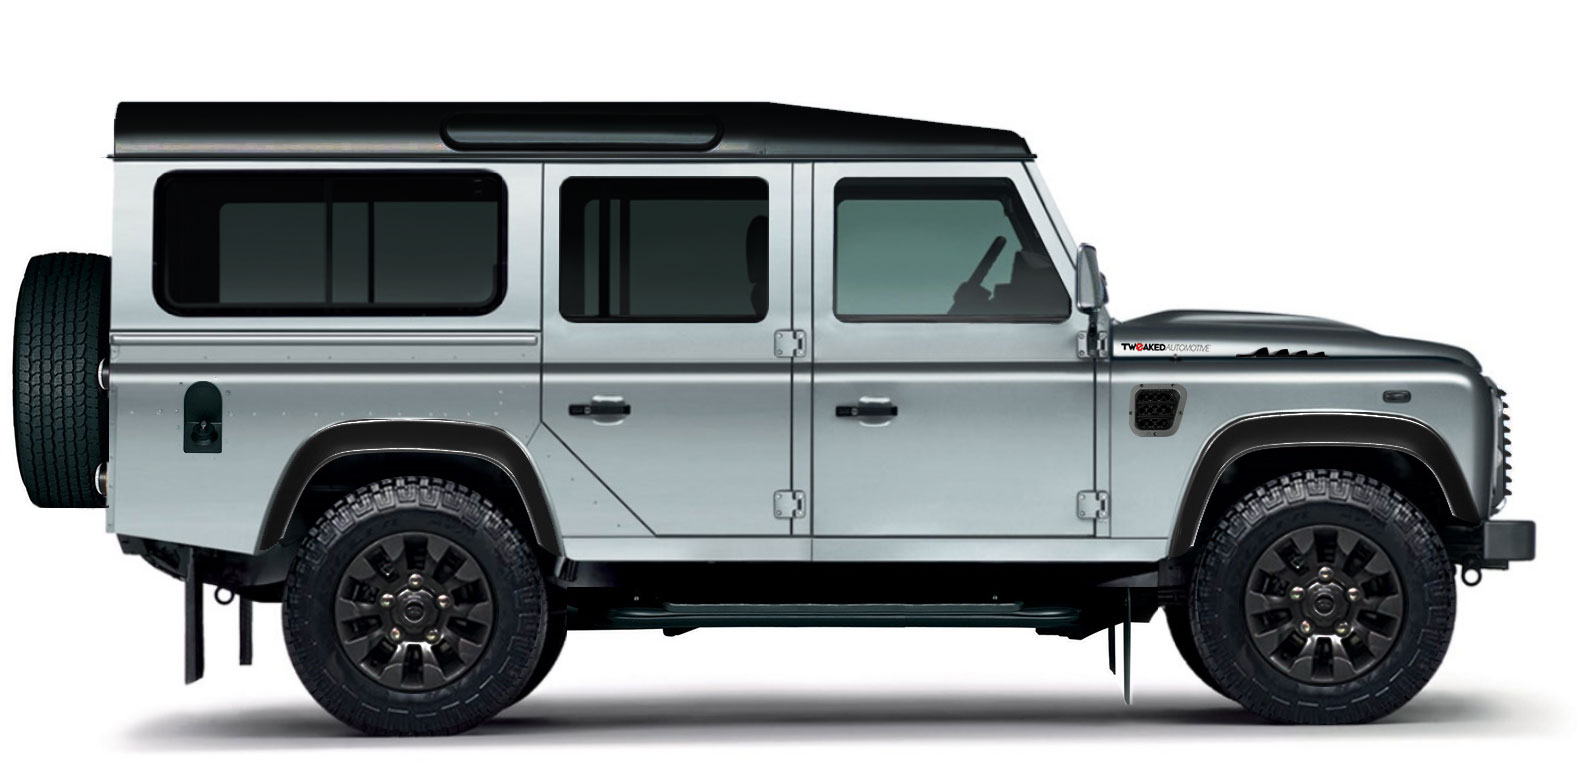 land rover defender 110 xs station wagon tweaked edition. Black Bedroom Furniture Sets. Home Design Ideas